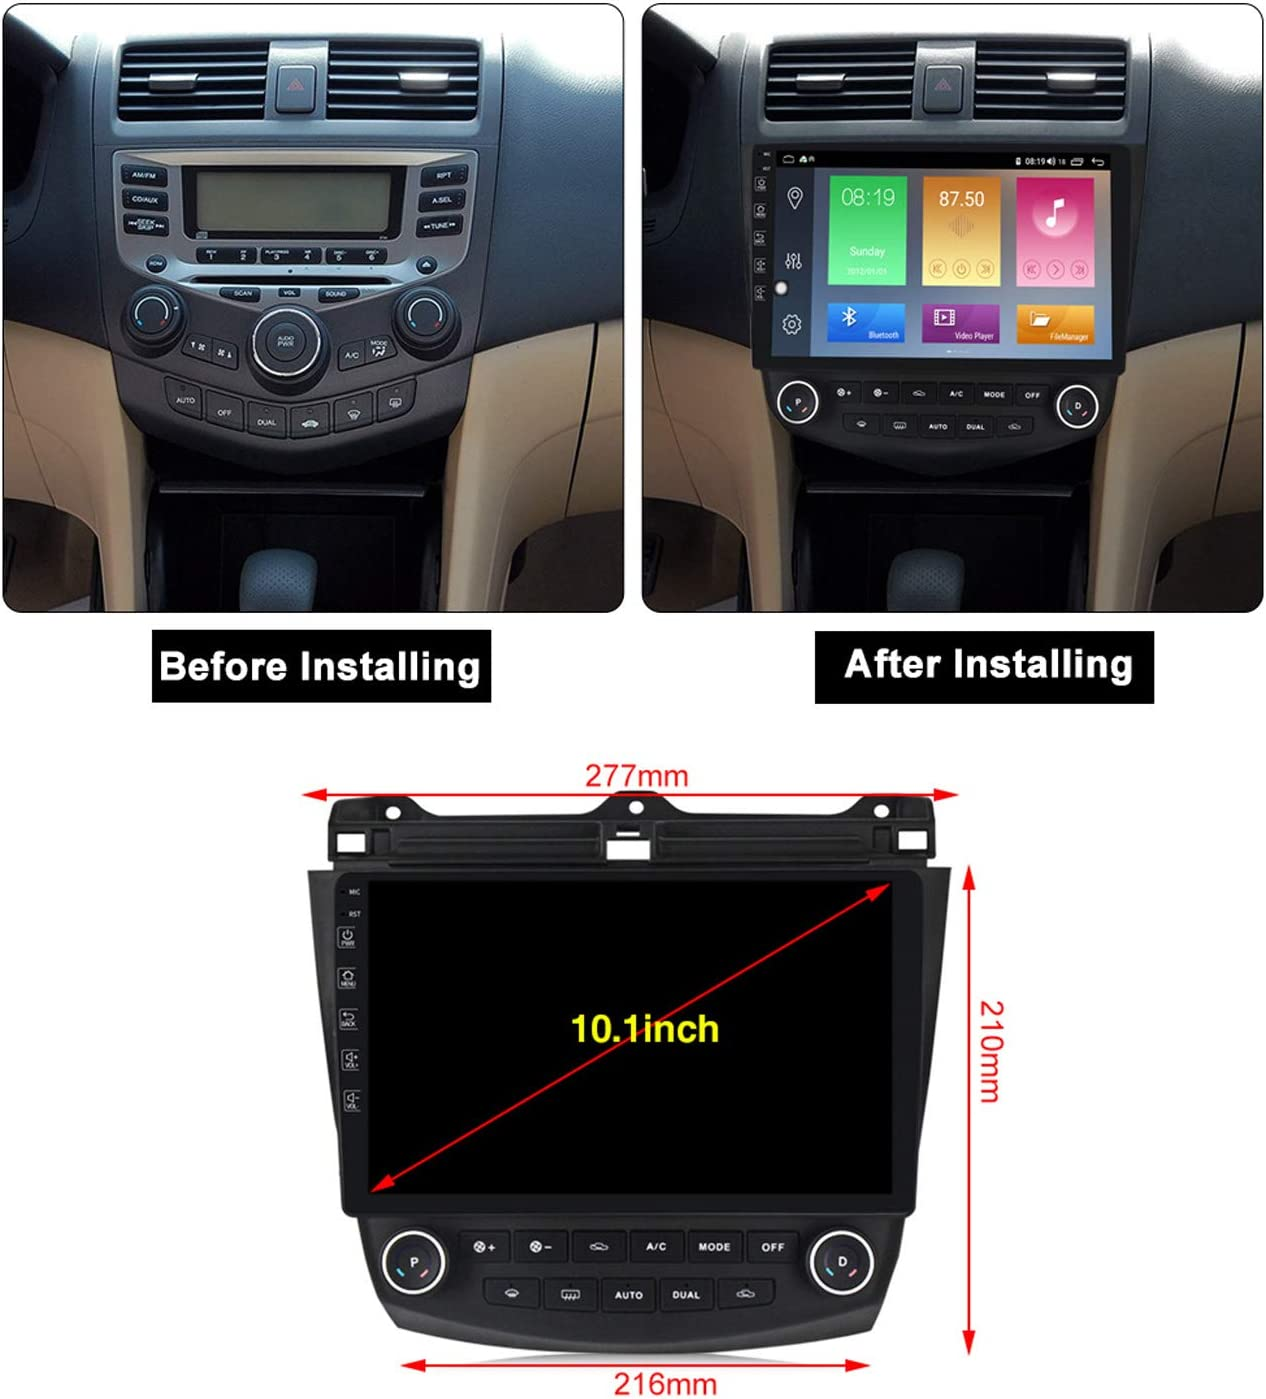 MekedeTech Android 10.0 Car Radio Stereo Player 10.1 inch Touch Screen GPS Navigation Built-in DSP Bluetooth Head Unit for Honda Accord Supports Full RCA Output Backup Camera WiFi OBD2 DVR TPMS